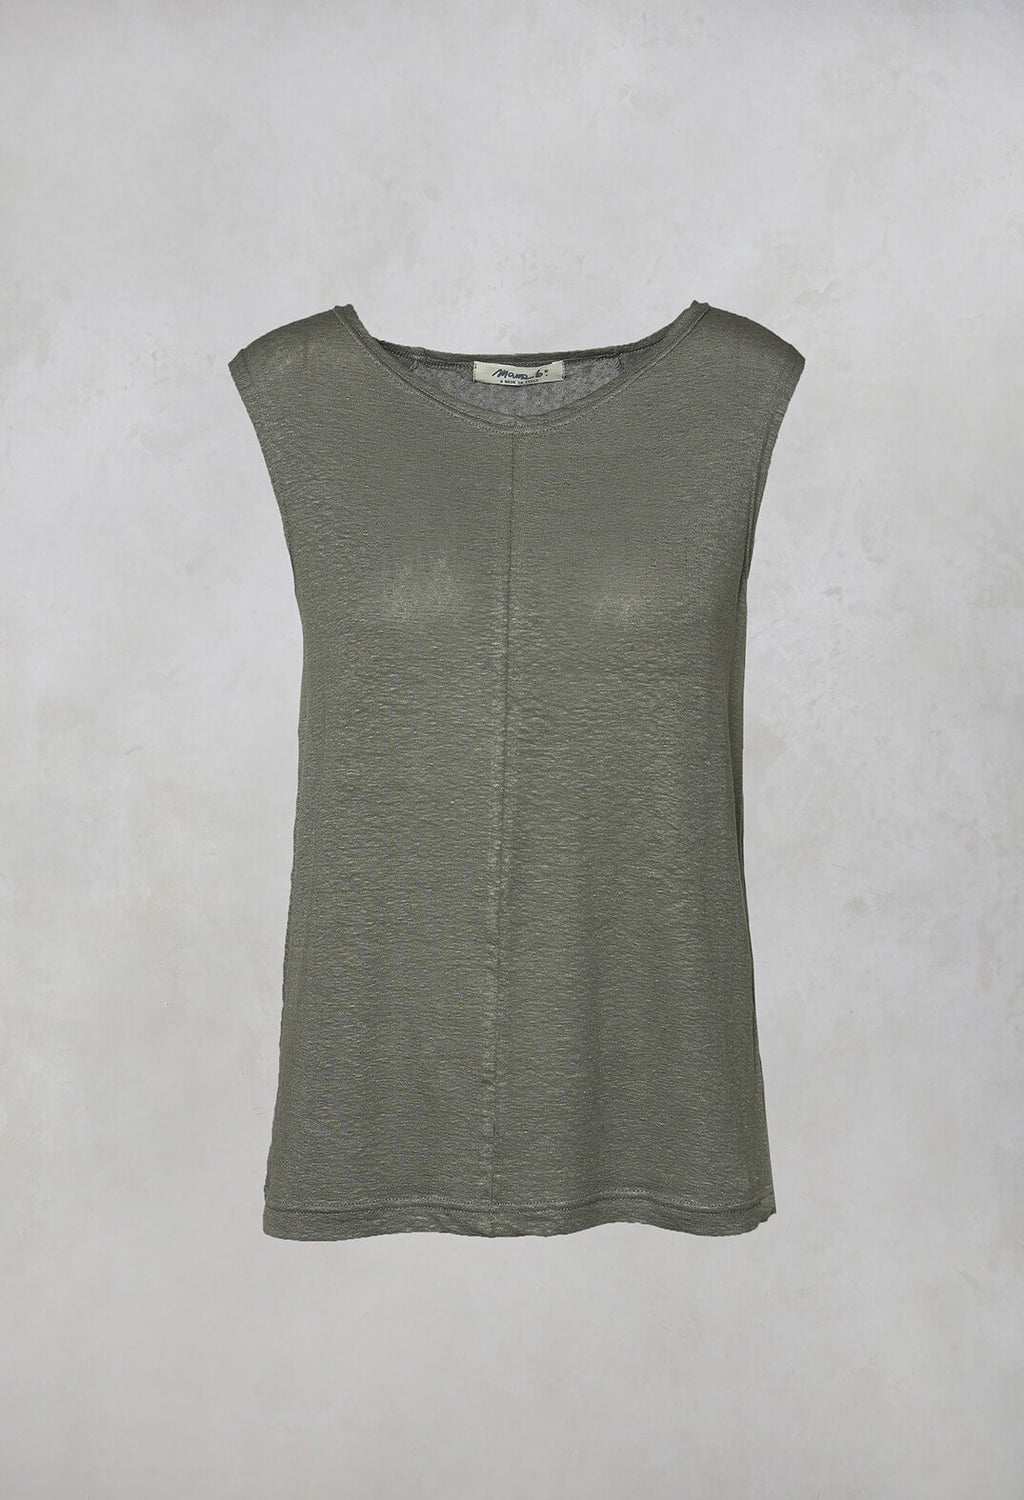 Passito L Knitted Vest Top in Timo